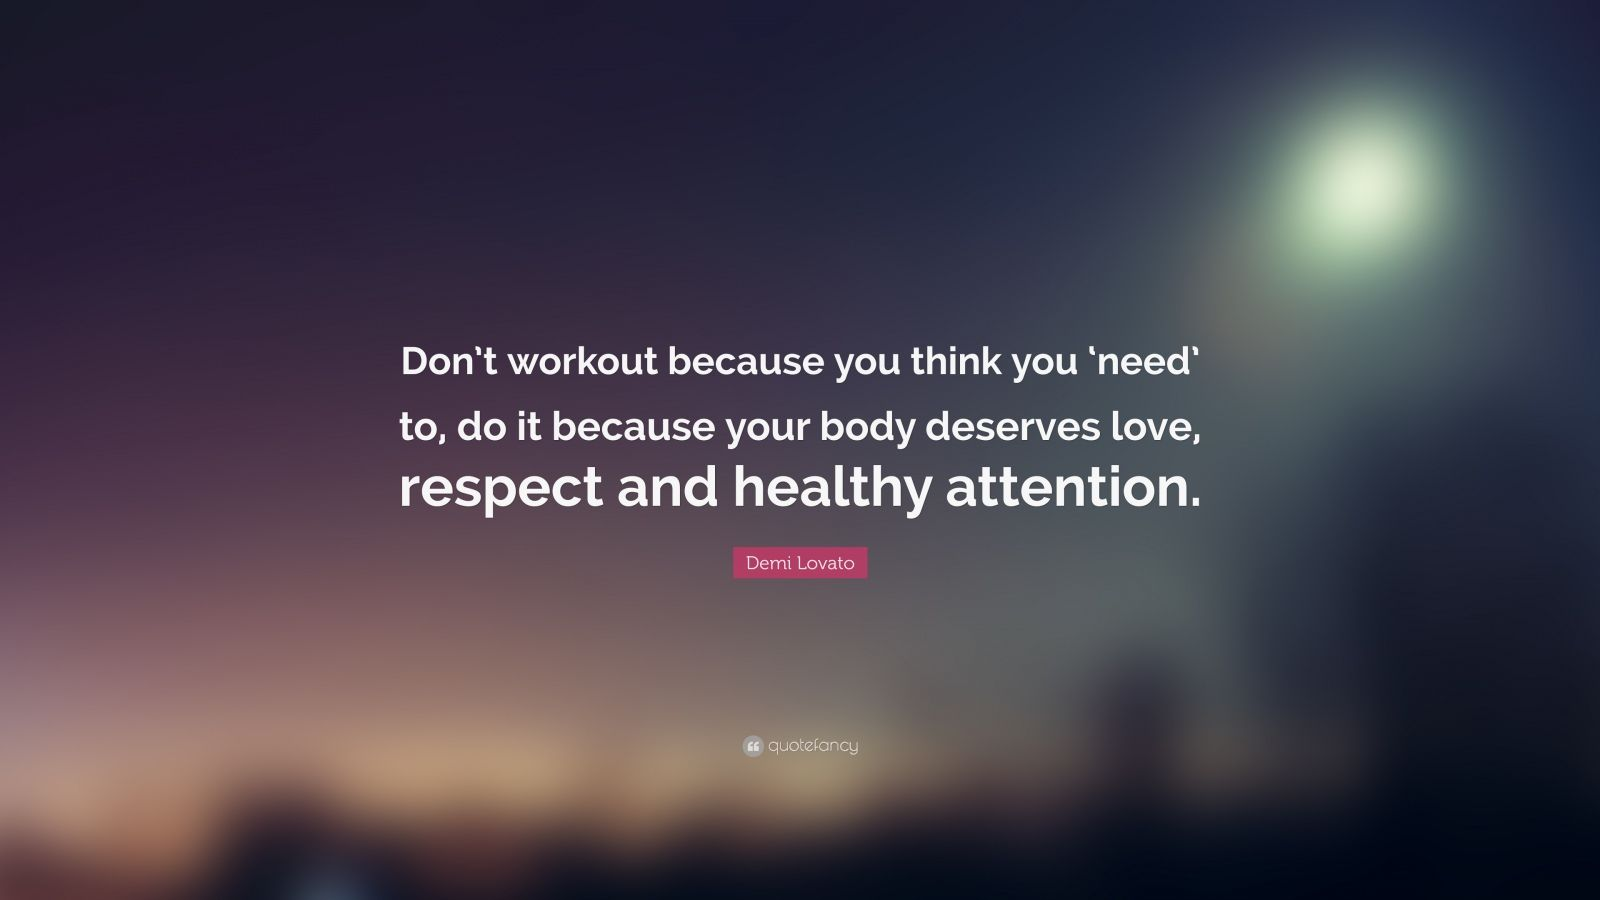 """Demi Lovato Quote: """"Don't workout because you think you 'need' to, do it because your body deserves love, respect and healthy attention."""""""